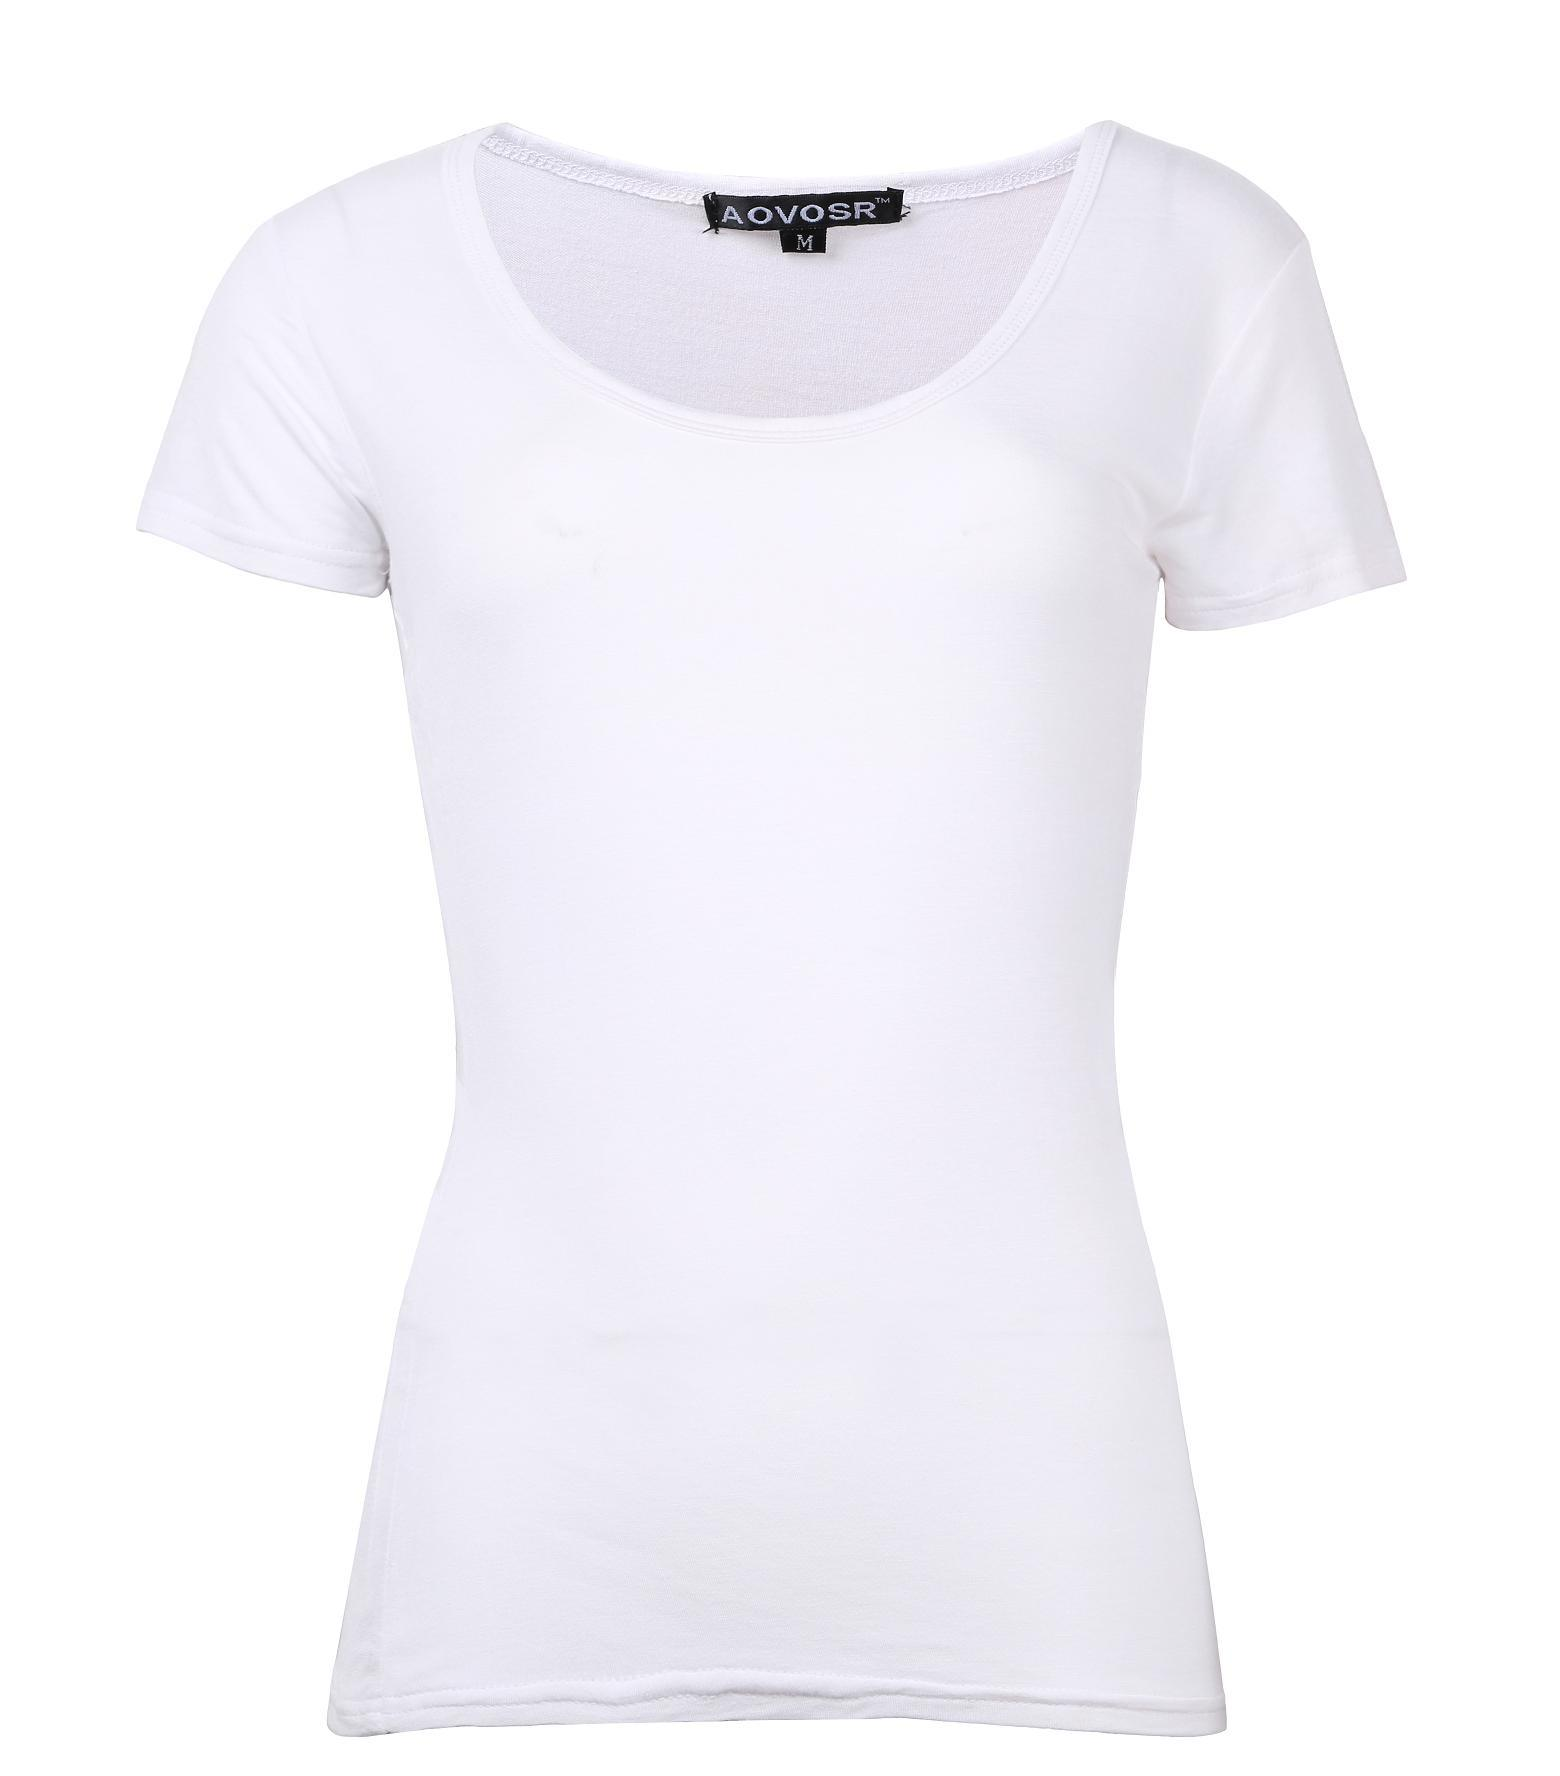 Shop for womens white shirt online at Target. Free shipping on purchases over $35 and save 5% every day with your Target REDcard.